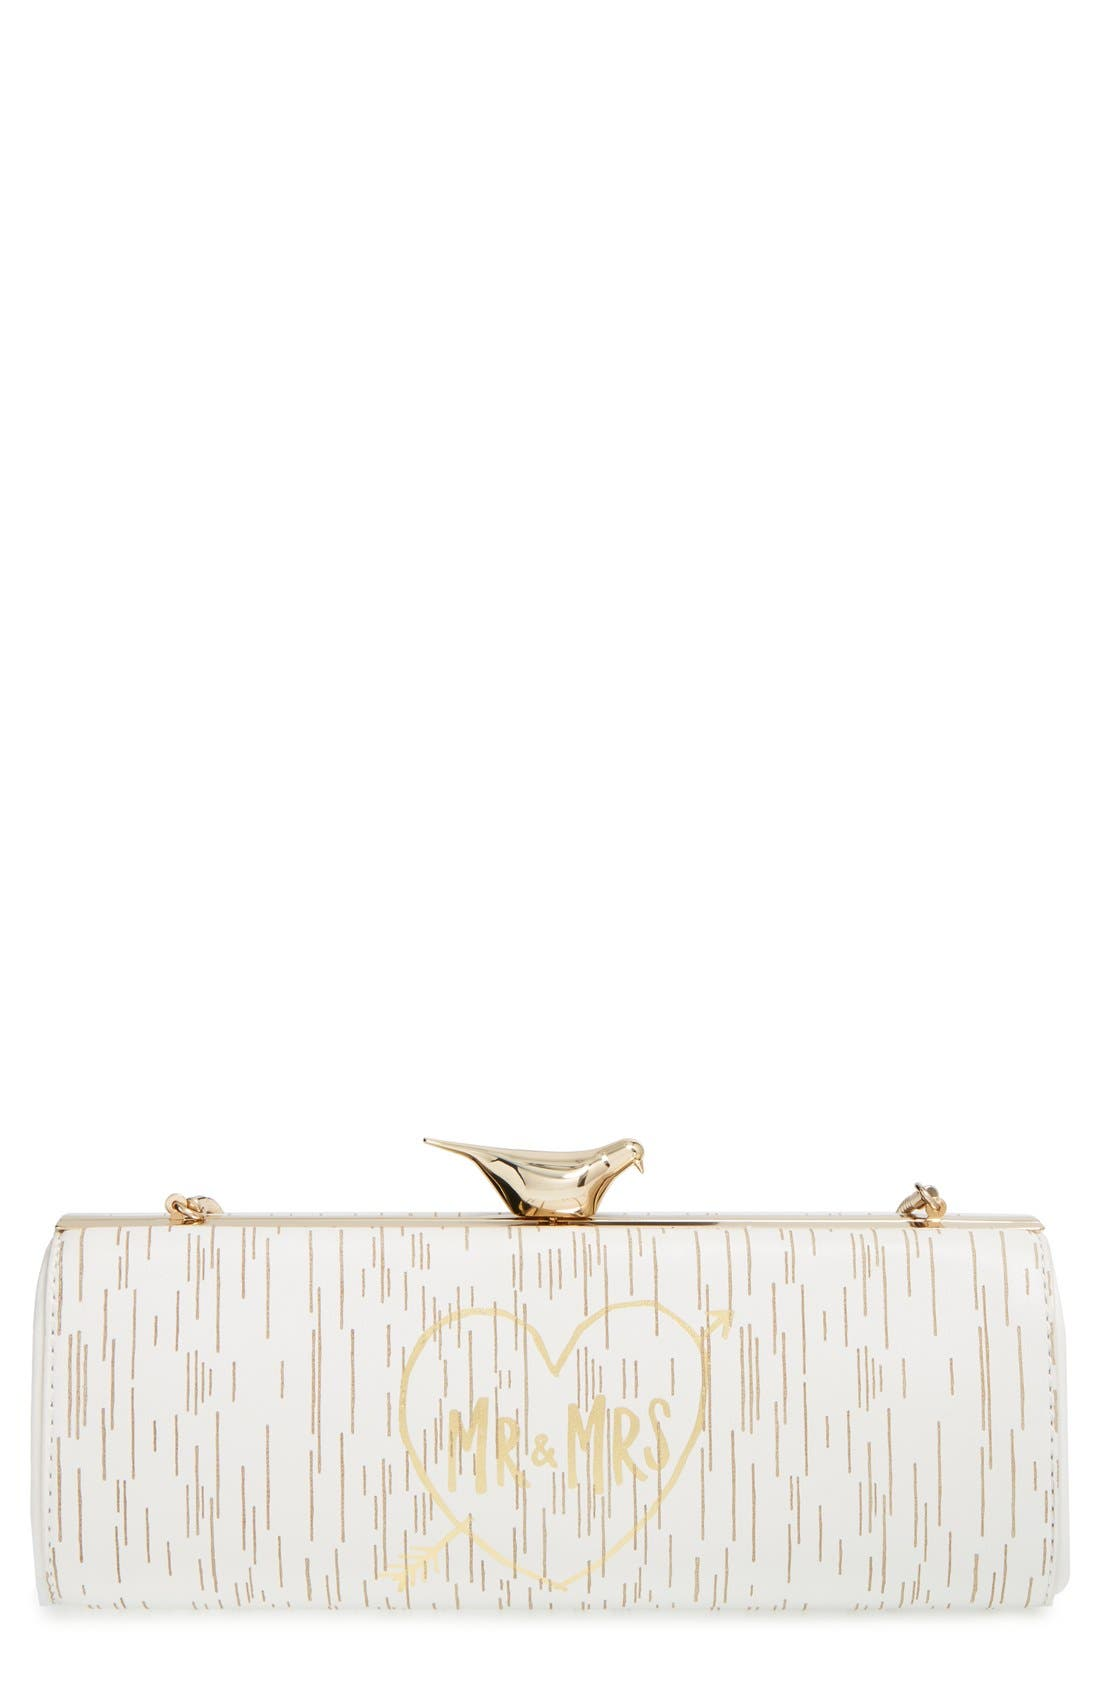 Alternate Image 1 Selected - kate spade new york 'wedding belles - mr. & mrs.' clutch